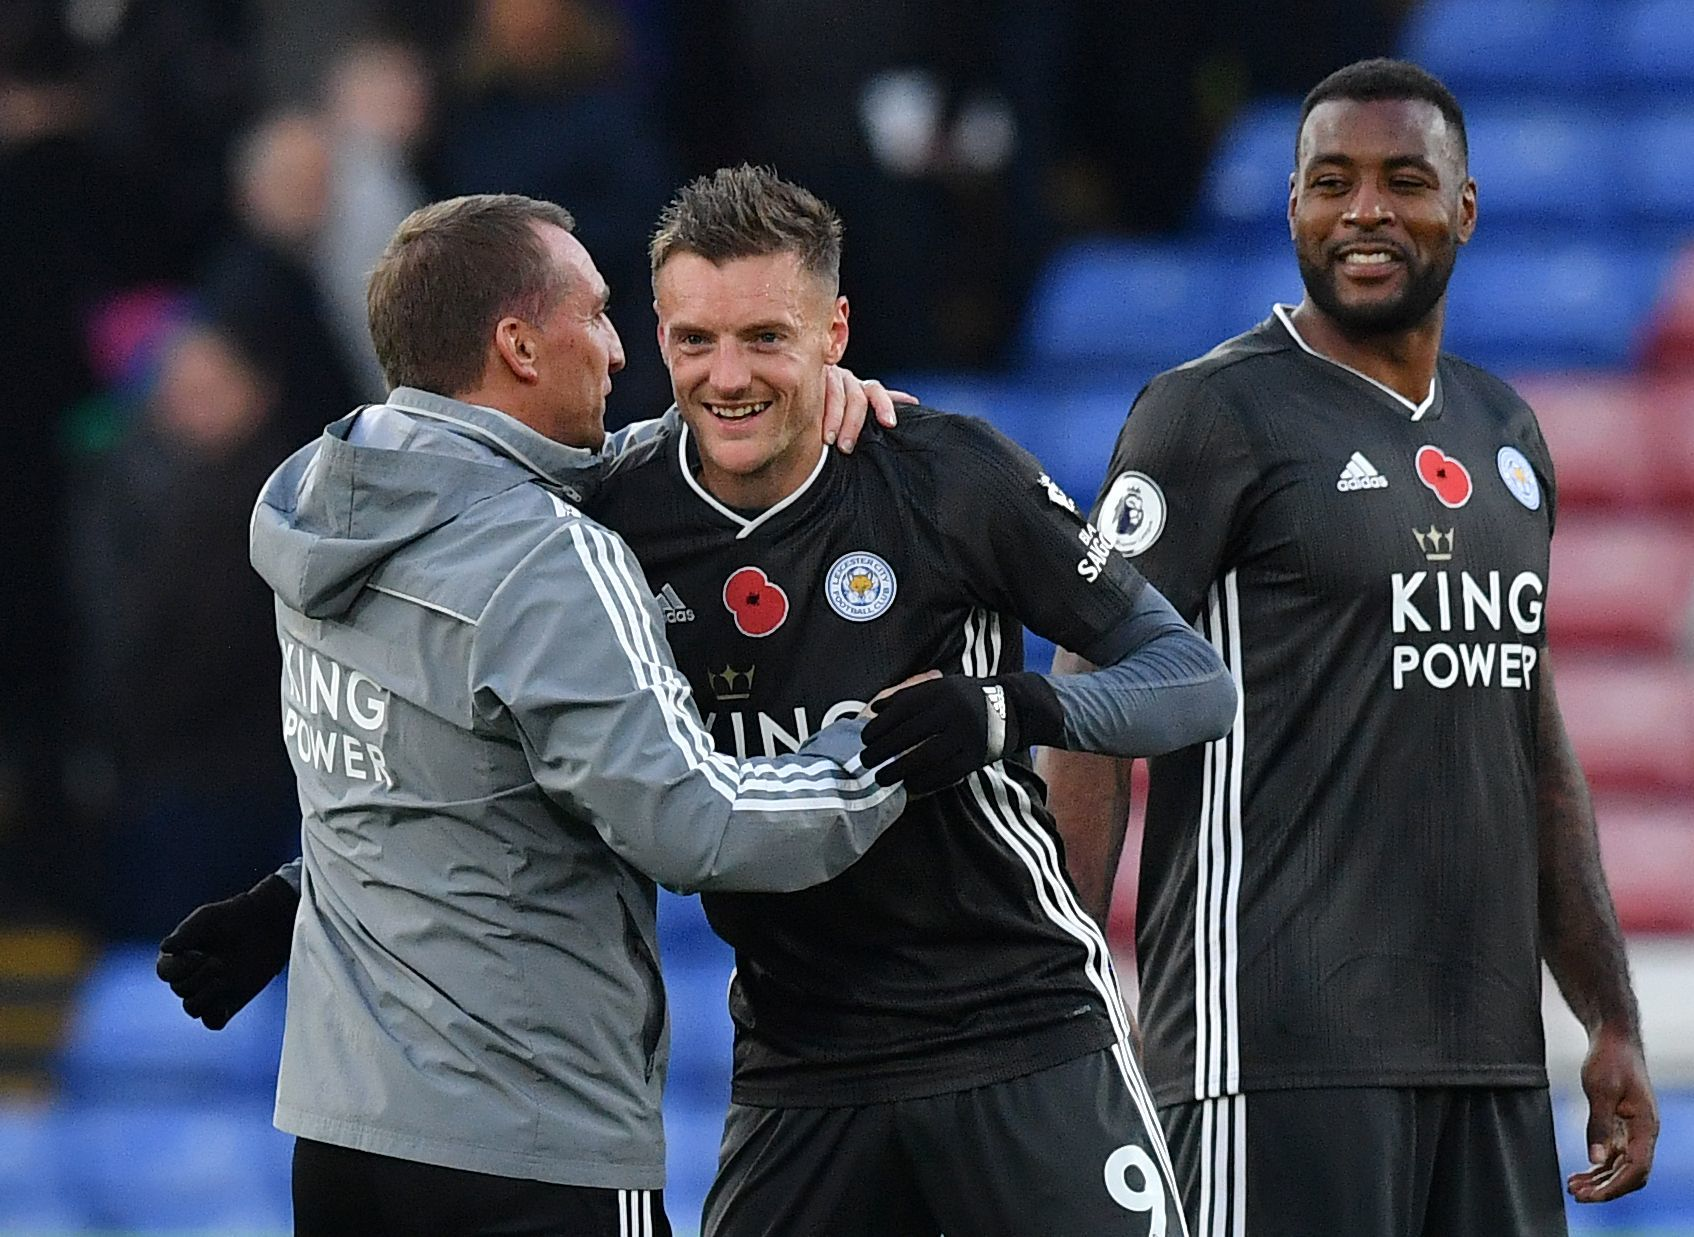 Leicester Citys Northern Irish manager Brendan Rodgers (L) congratulates Leicester Citys English striker Jamie <HIT>Vardy</HIT> (c) during the English Premier League football match between Crystal Palace and Leicester City at Selhurst Park in south London on November 3, 2019. - Leicester won the match 2-0. (Photo by Ben STANSALL / AFP) / RESTRICTED TO EDITORIAL USE. No use with unauthorized audio, video, data, fixture lists, club/league logos or live services. Online in-match use limited to 120 images. An additional 40 images may be used in extra time. No video emulation. Social media in-match use limited to 120 images. An additional 40 images may be used in extra time. No use in betting publications, games or single club/league/player publications. /